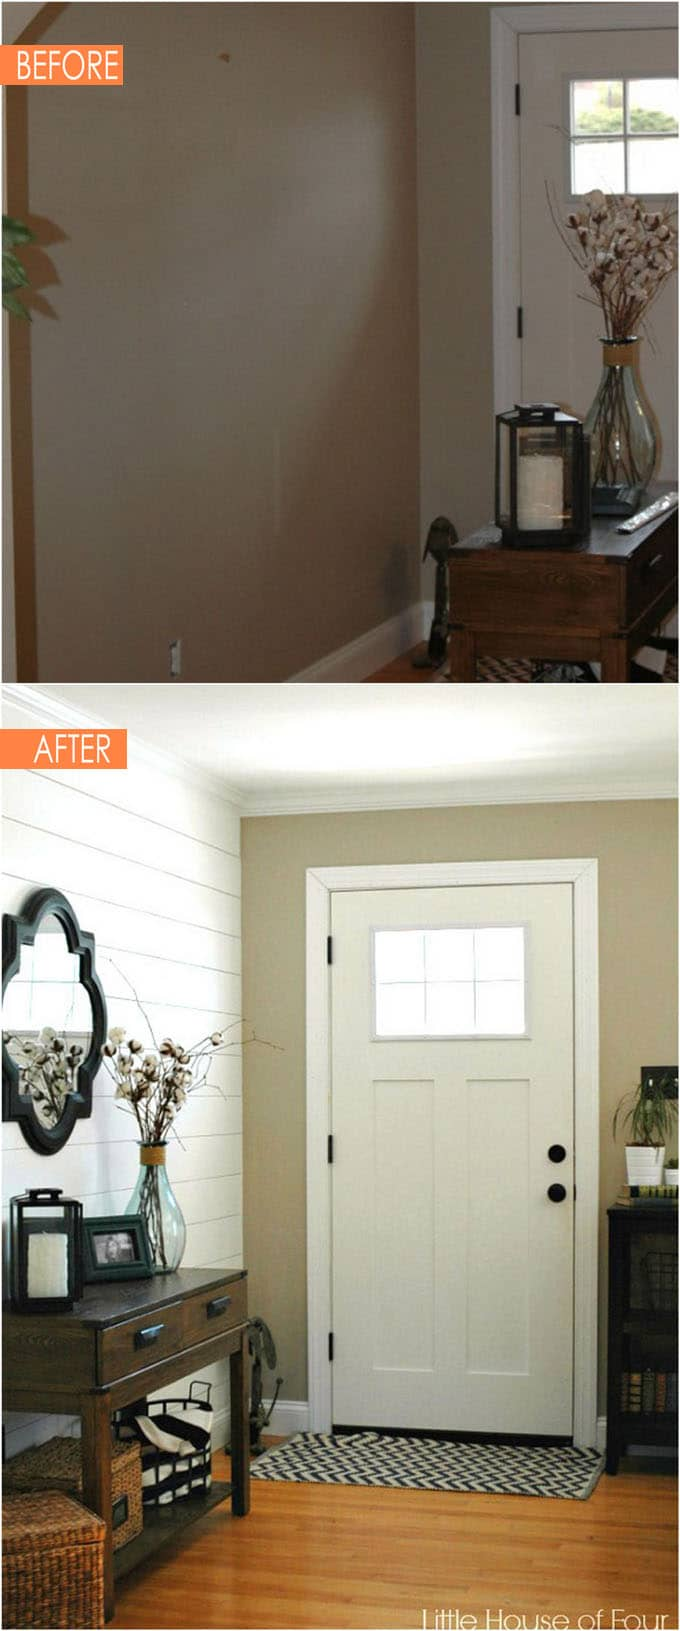 20-entryway-before-after-apieceofrainbowblog (12)